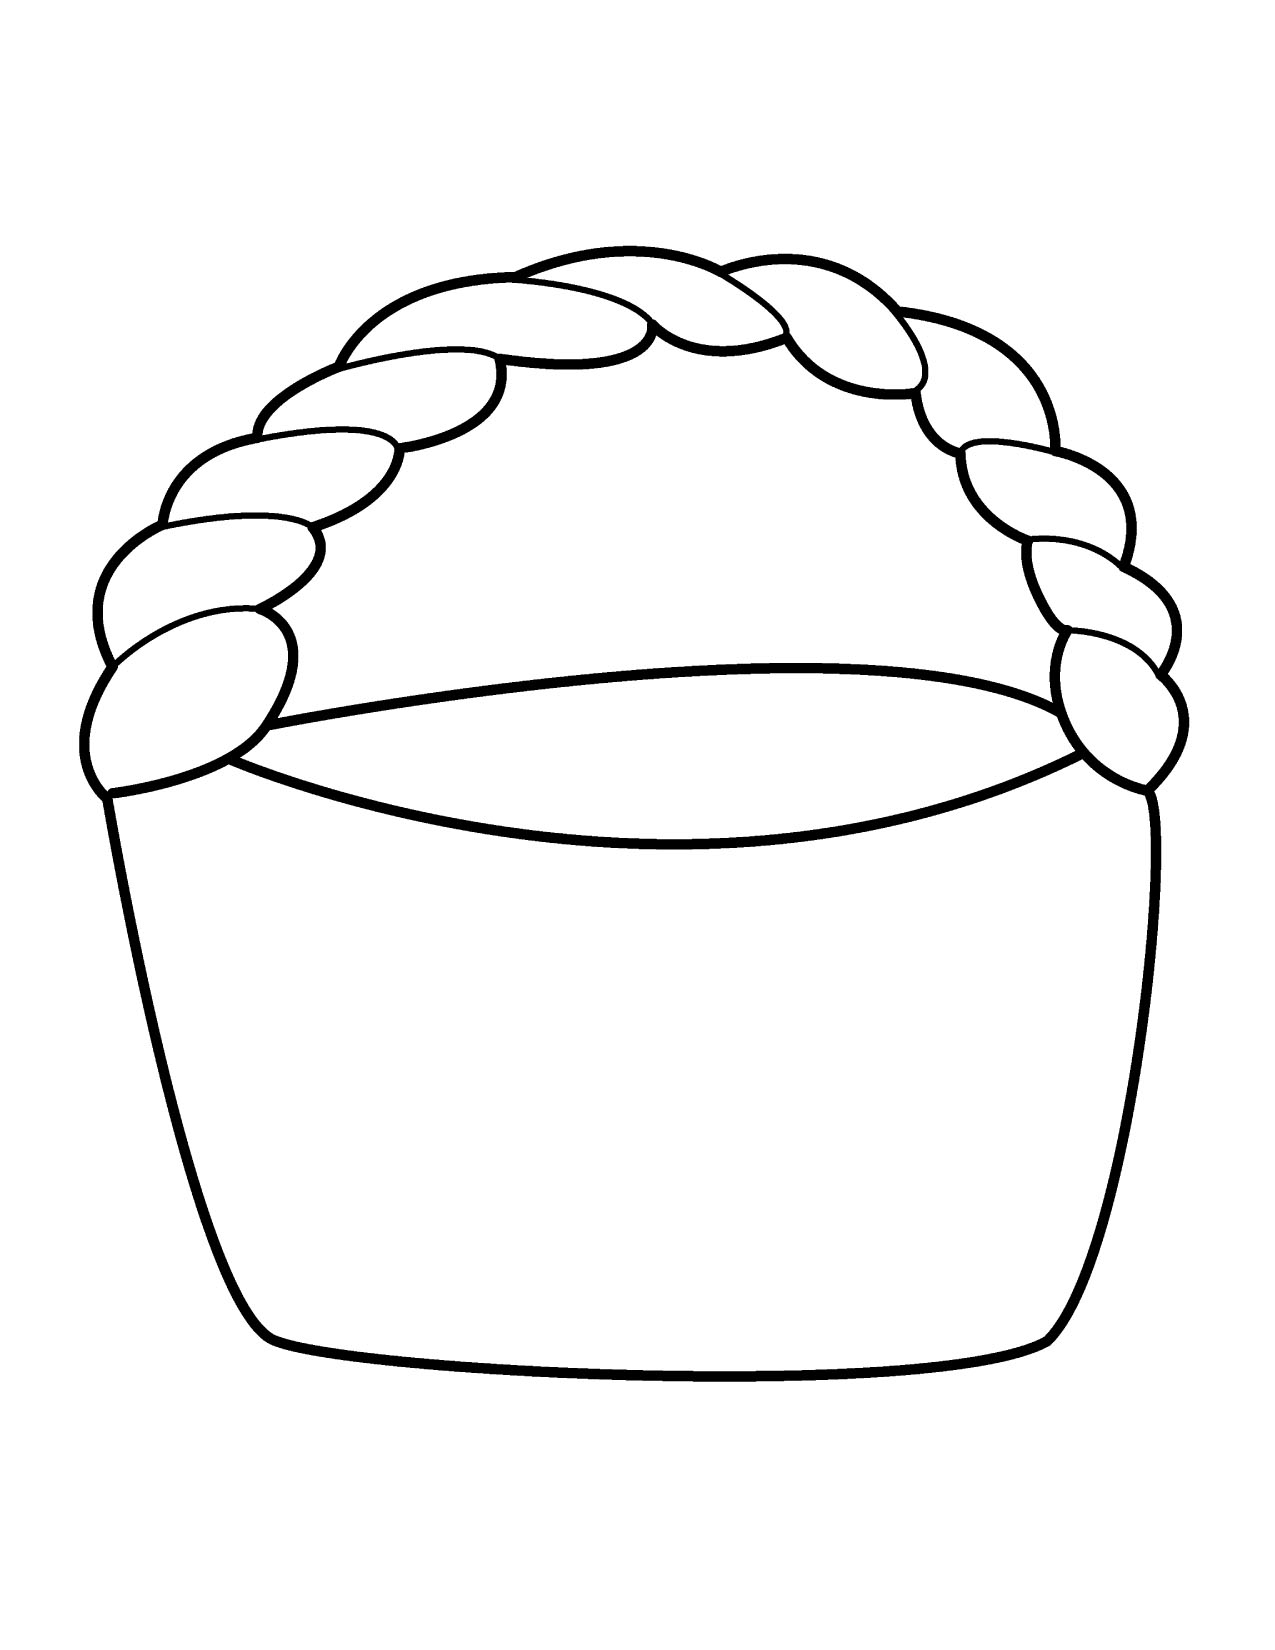 gift clipart u0026middot; memory clipart-gift clipart u0026middot; memory clipart-15